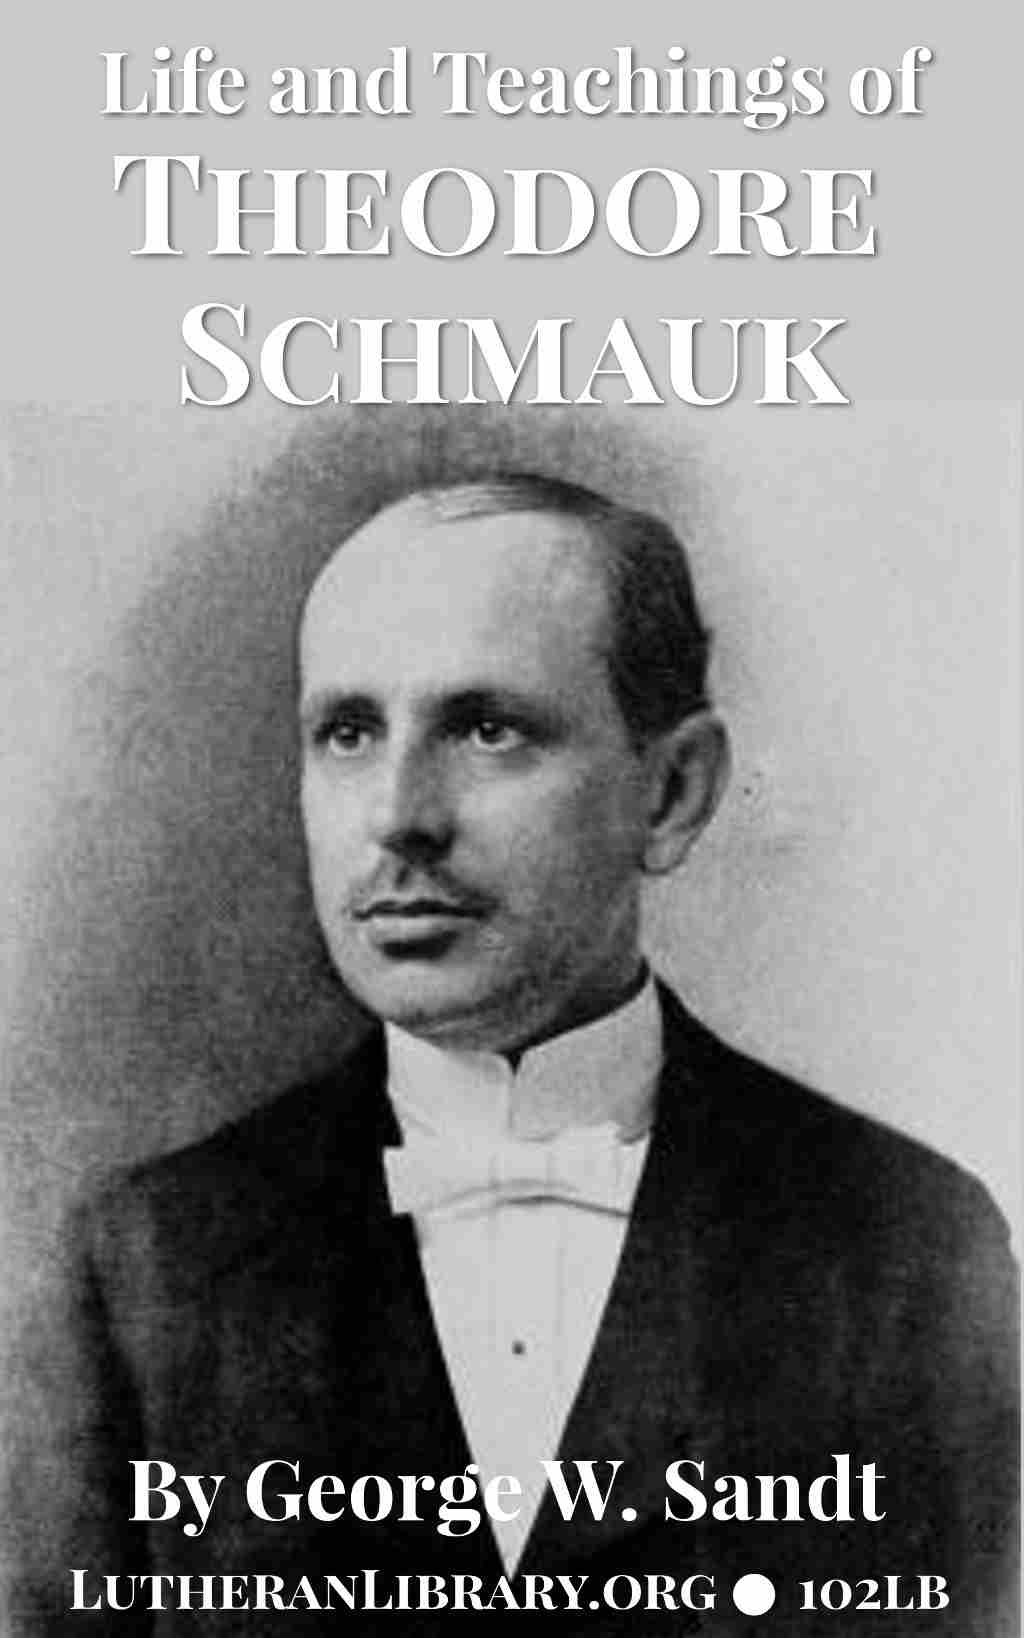 Life and Teachings of Theodore E. Schmauk – by George W. Sandt (1854-1931)